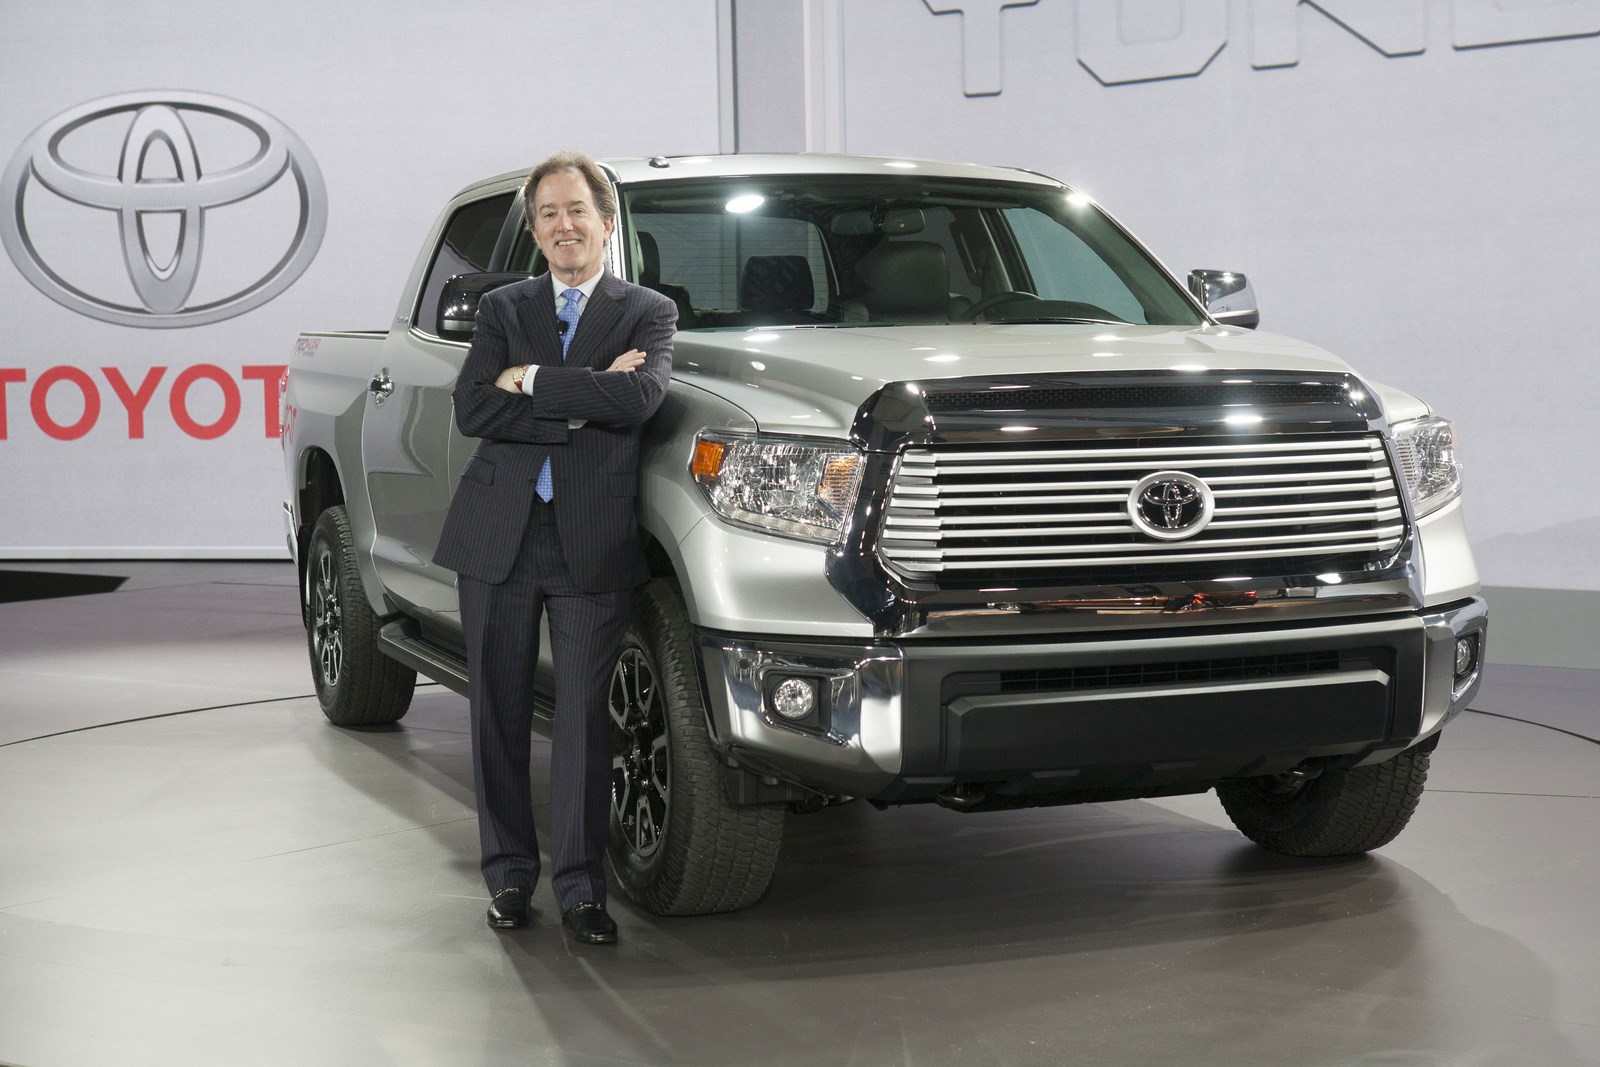 Toyota tundra photo - 3